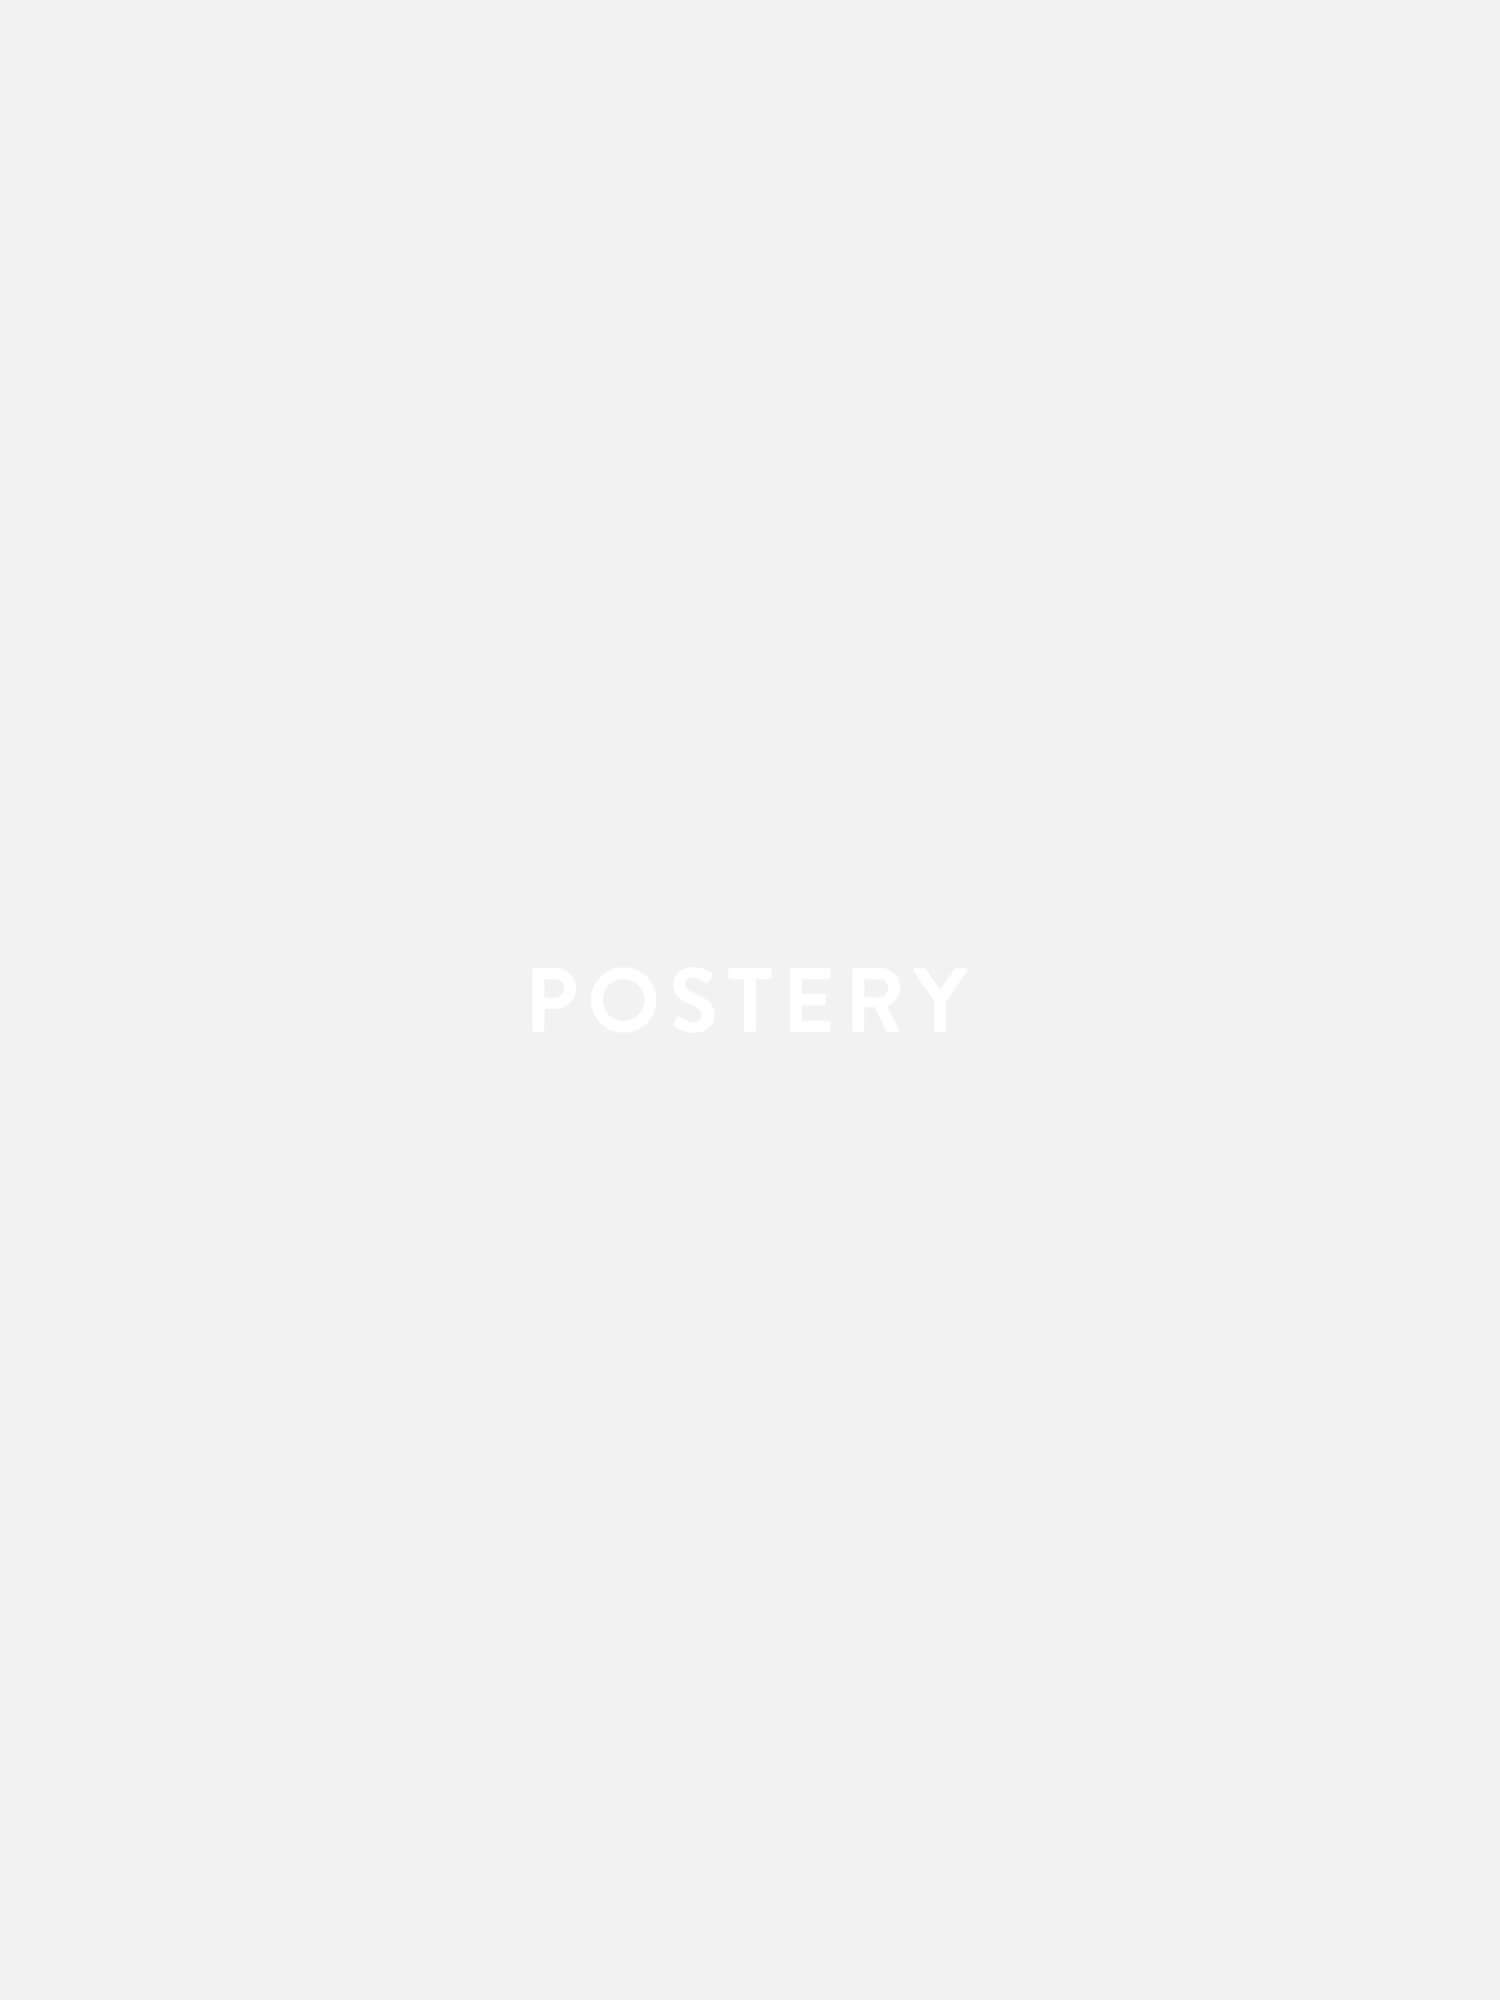 Organic Shapes Poster